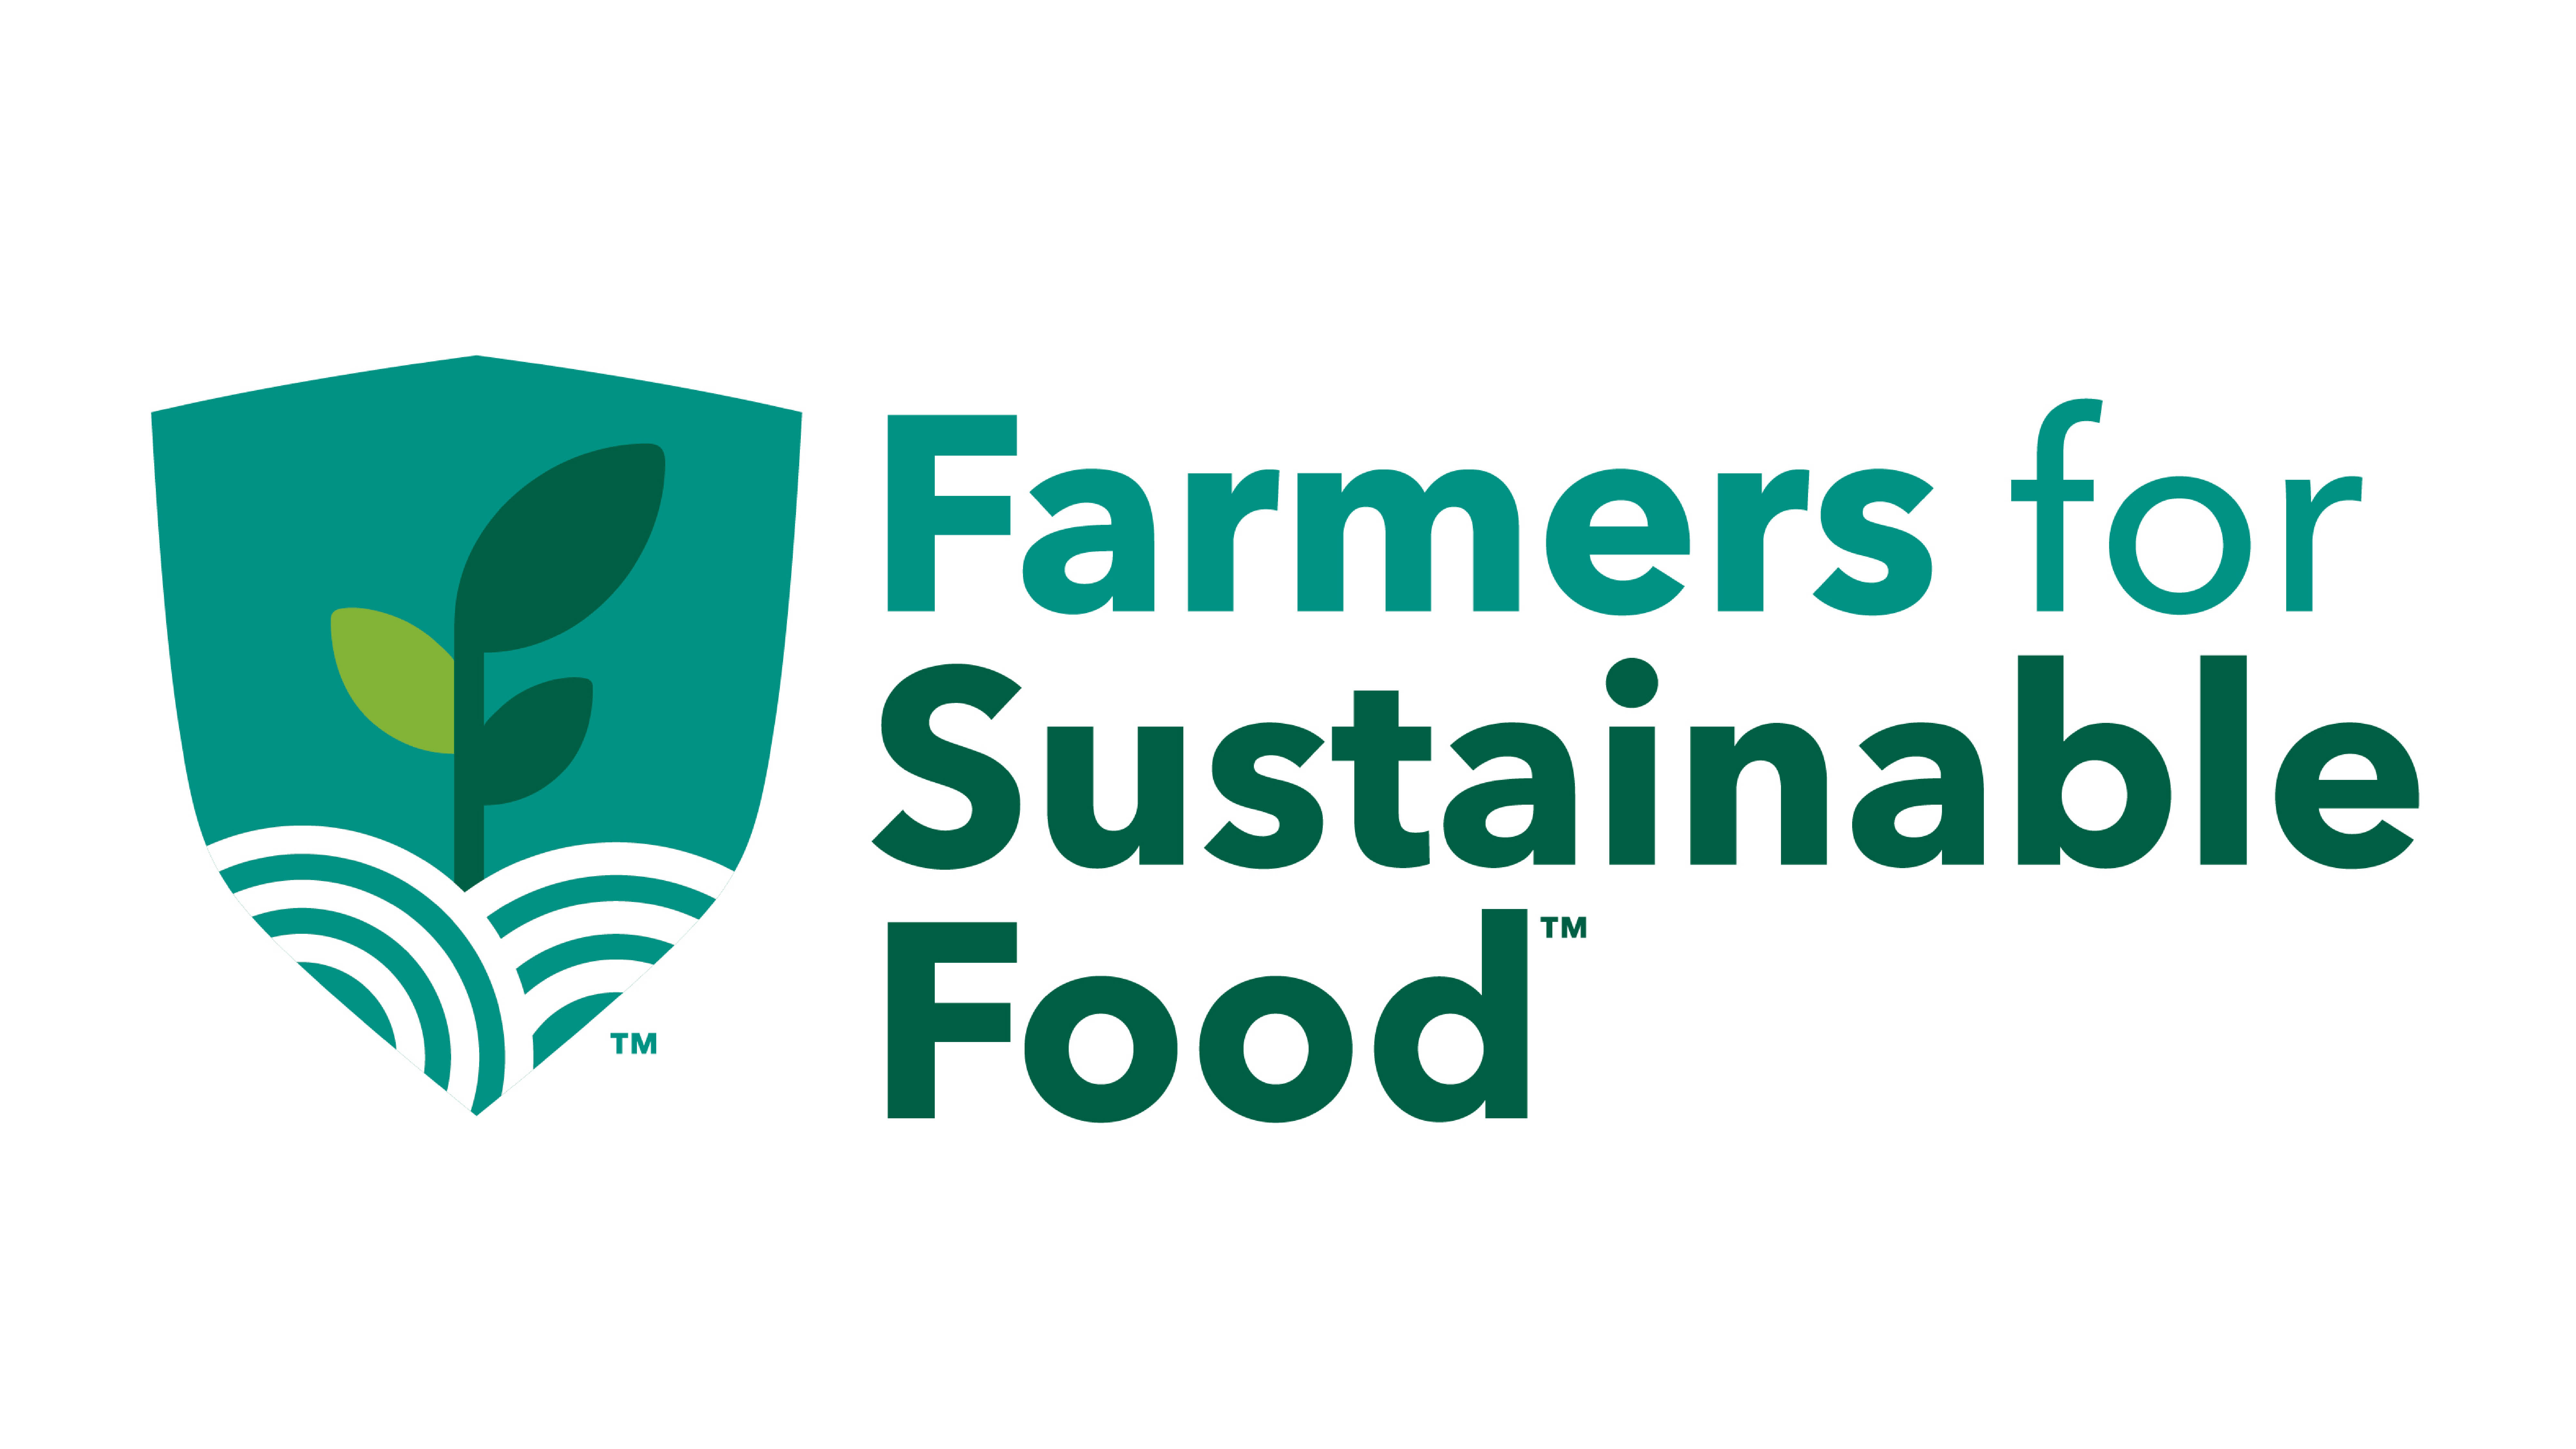 Farmers for Sustainable Food marks transformation of conservation alliance